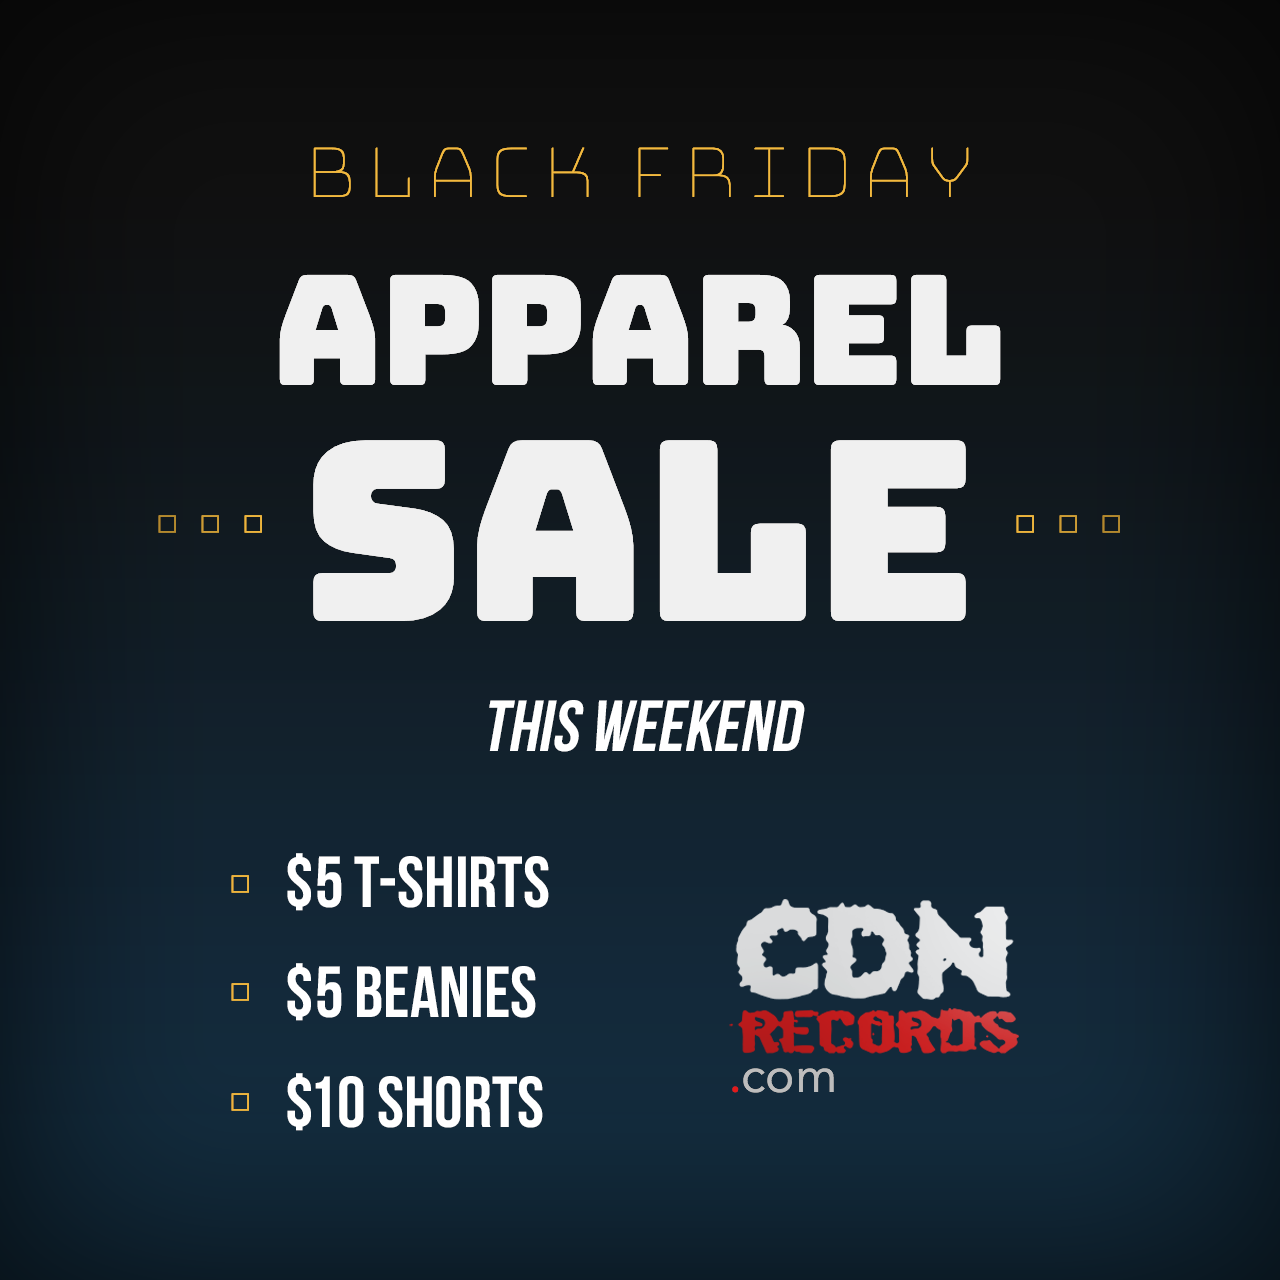 Black Friday 2019 promo graphic